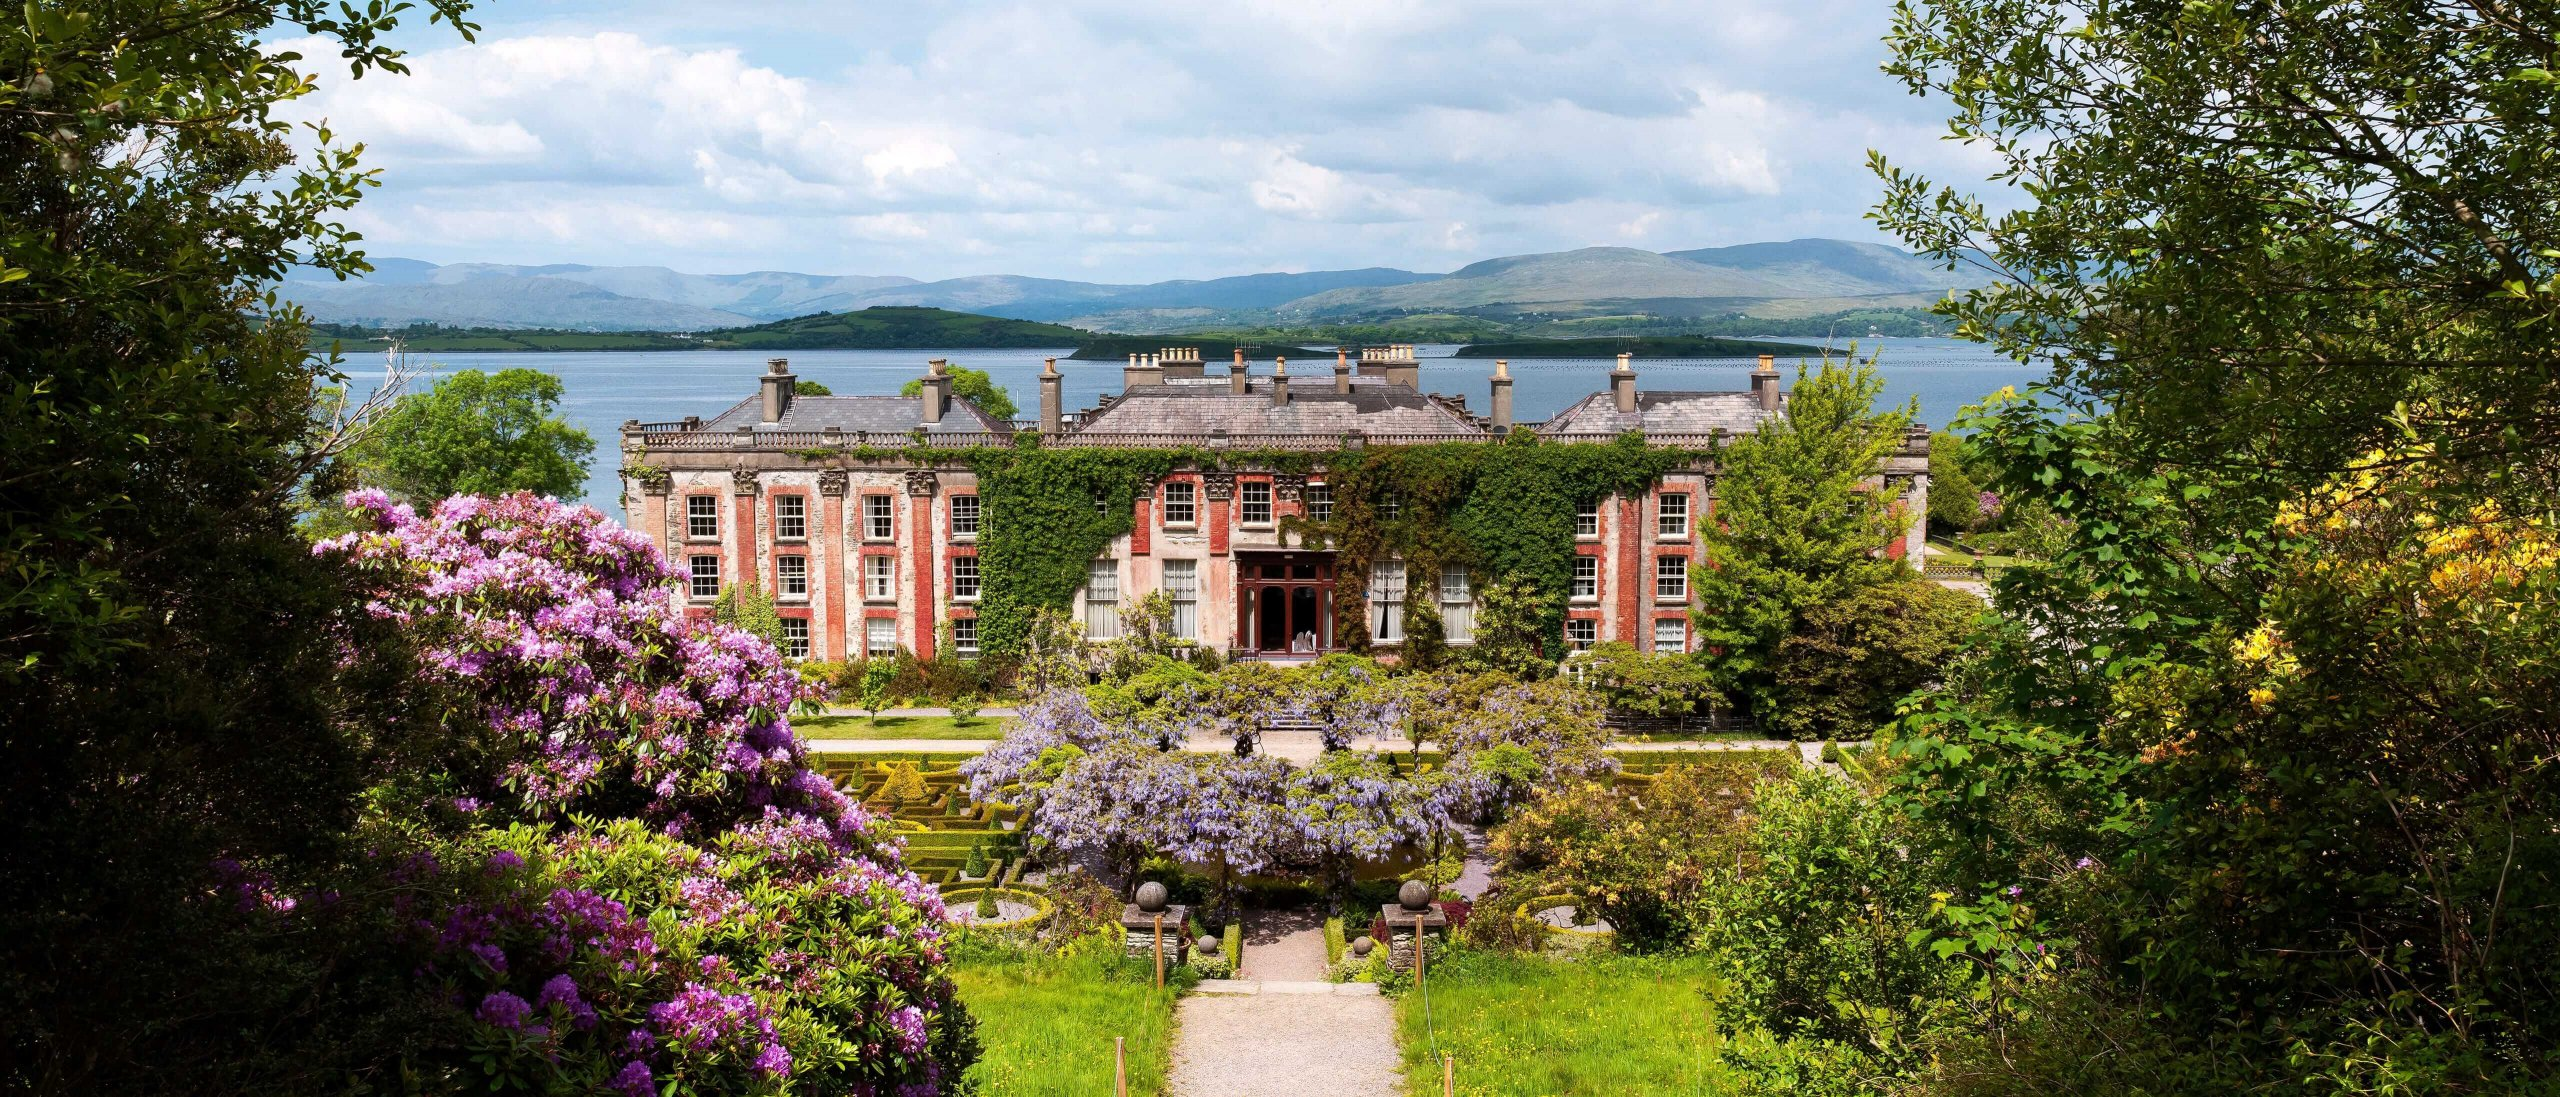 Scenic setting of 18th century Bantry House and Garden in West Cork, Ireland